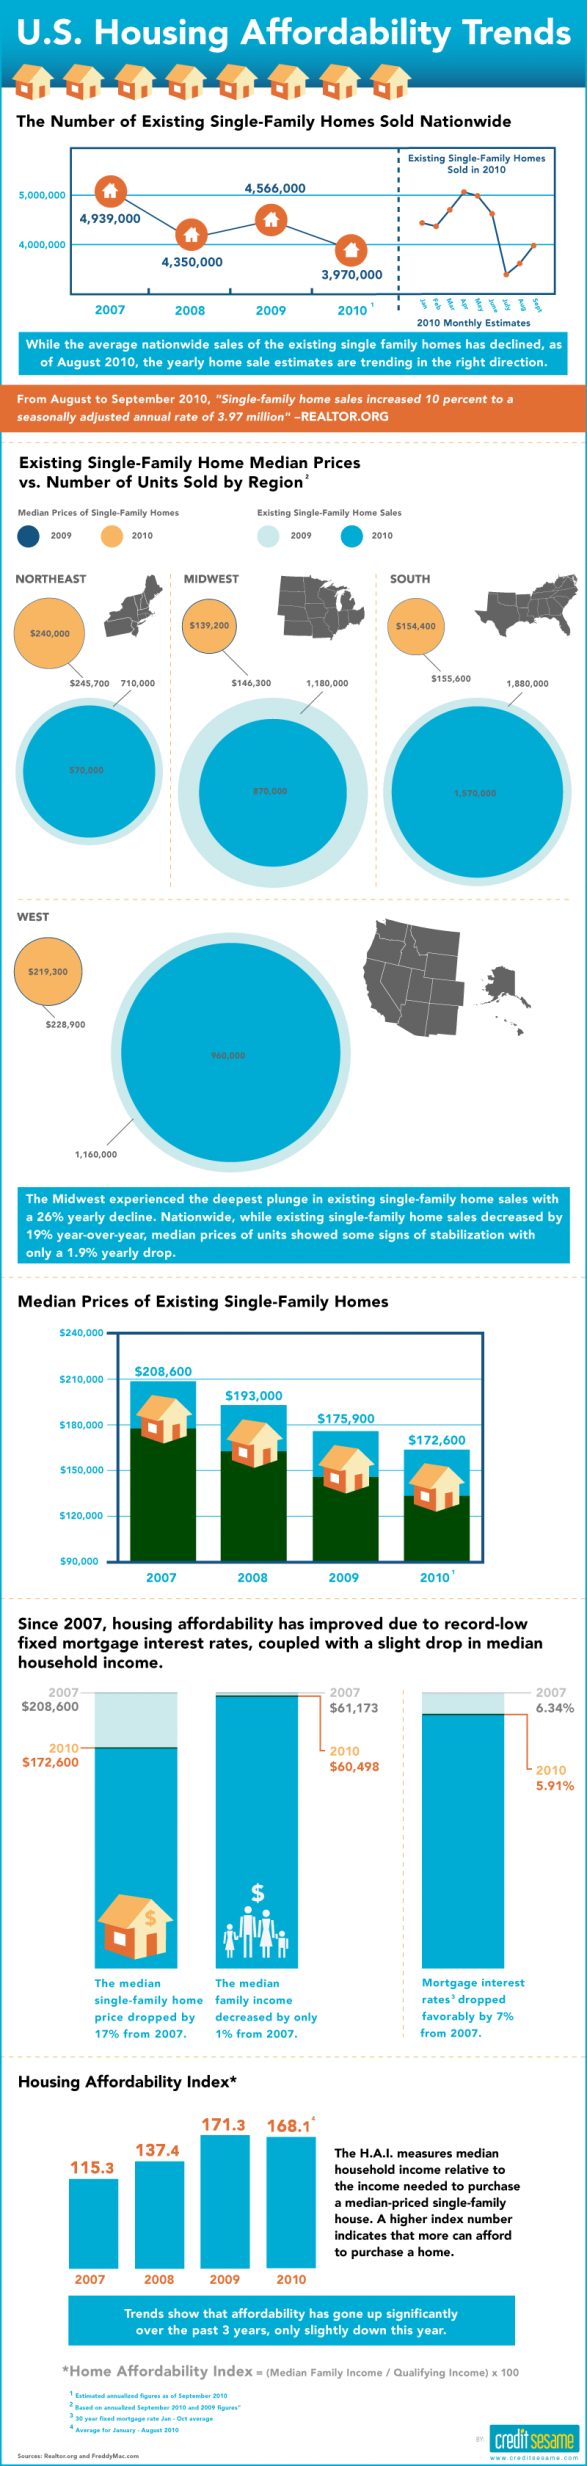 U.S. Housing Affordability Trends